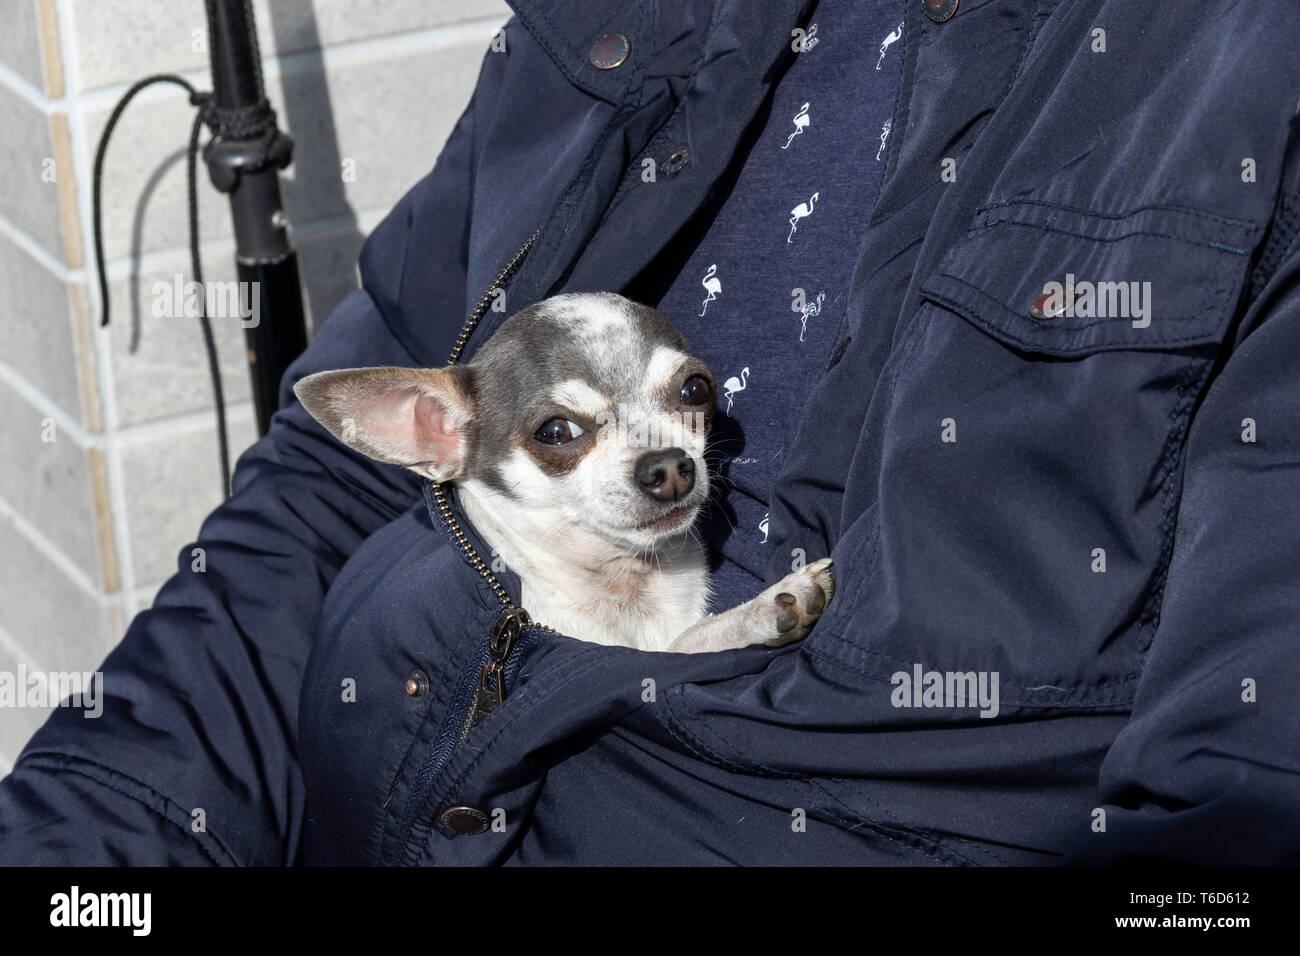 A chihuahua dog in white grey and brown colors, being comfy hiding in the owners blue jacket on a warm spring day. - Stock Image